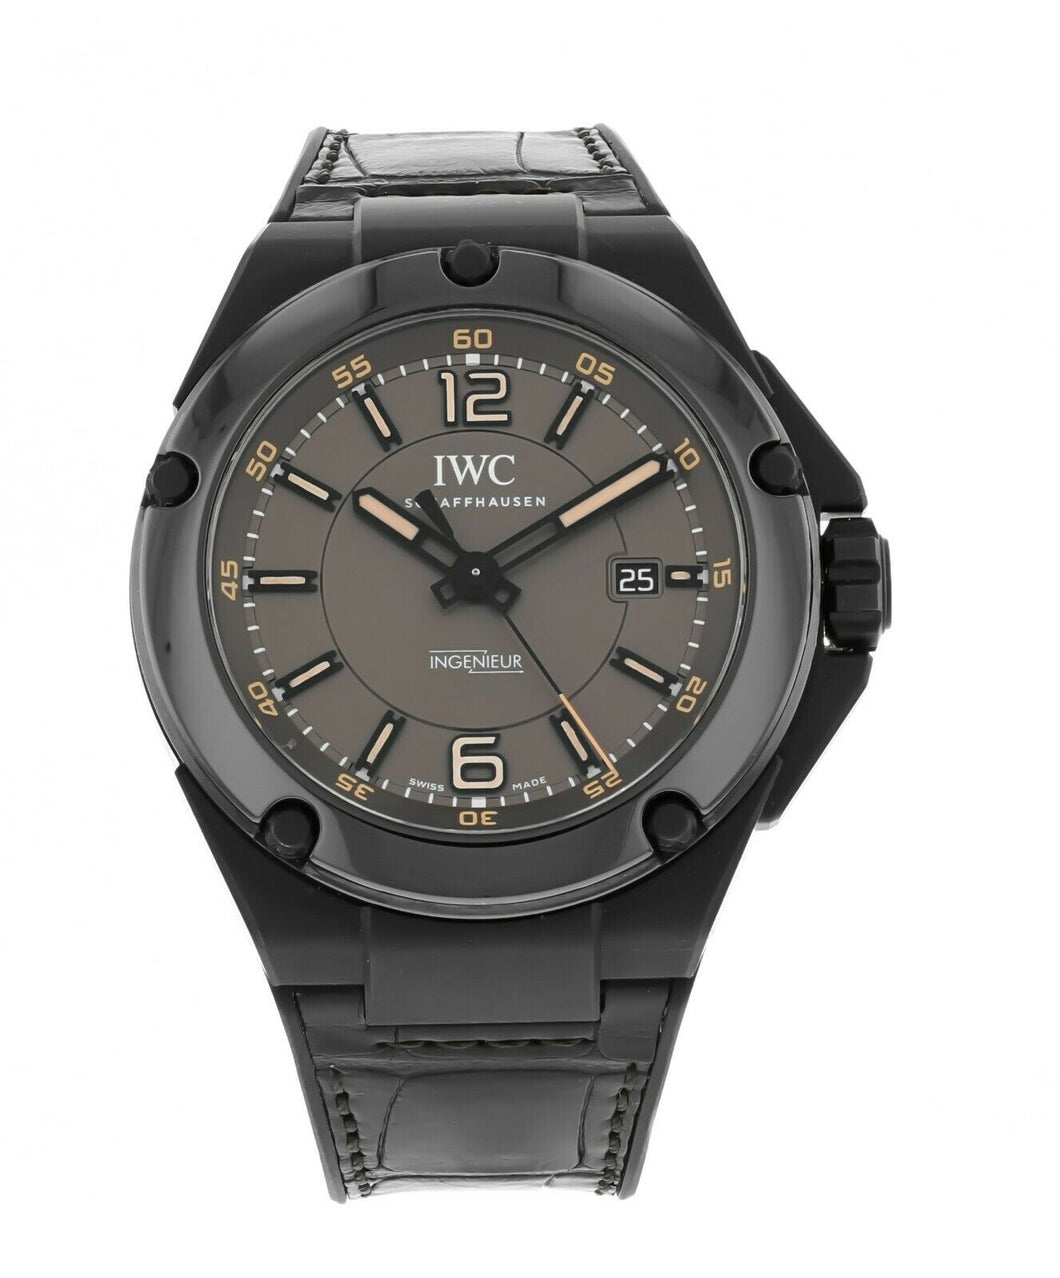 IWC Ingenieur AMG Black Series Auto 46mm Ceramic Mens Strap Watch IW322504